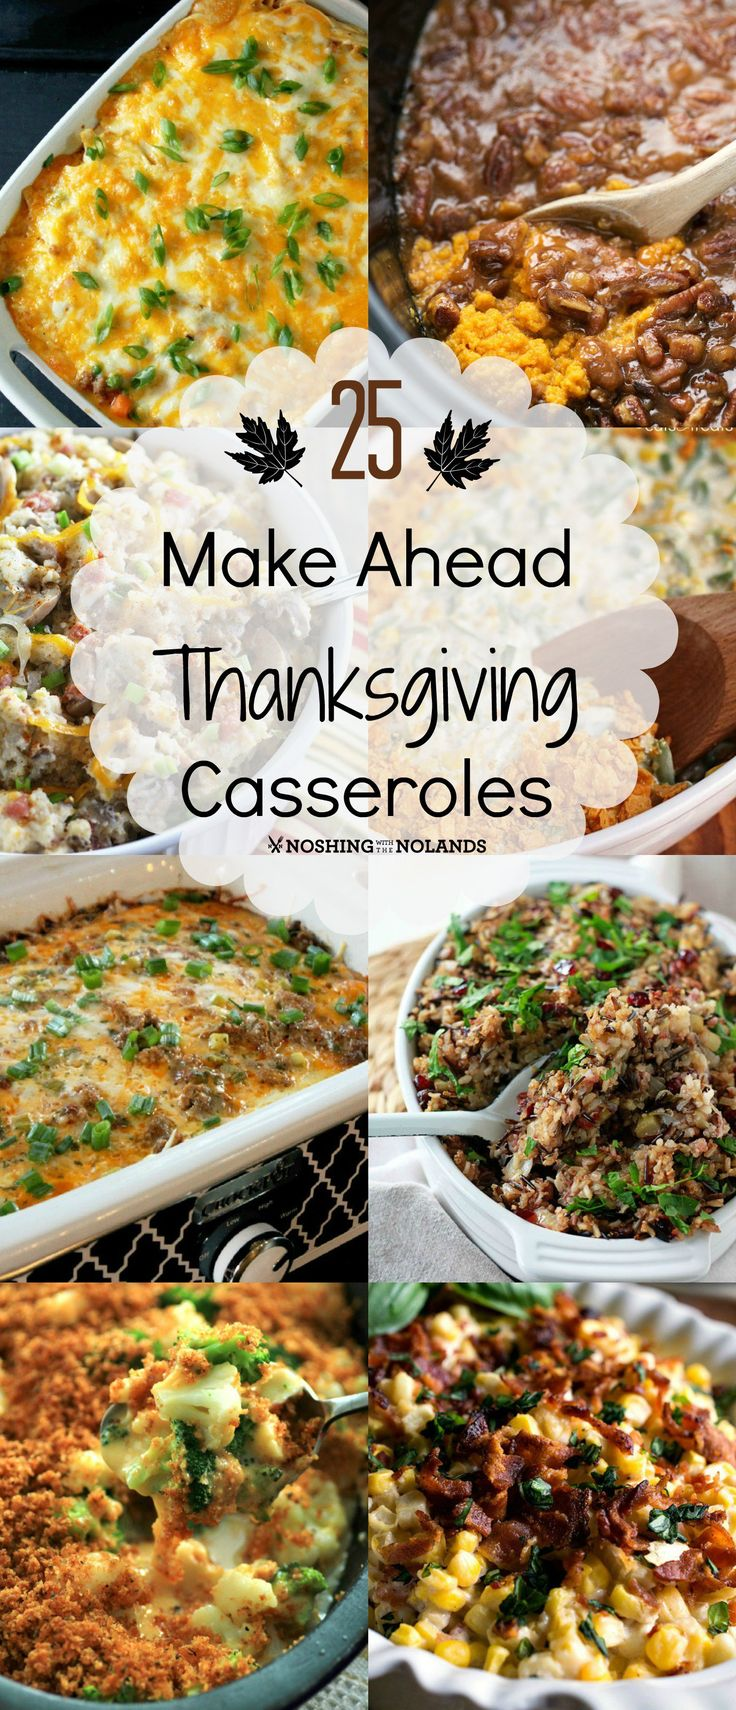 I am hoping you will love some of these 25 Make Ahead Thanksgiving Casseroles for your table this year.